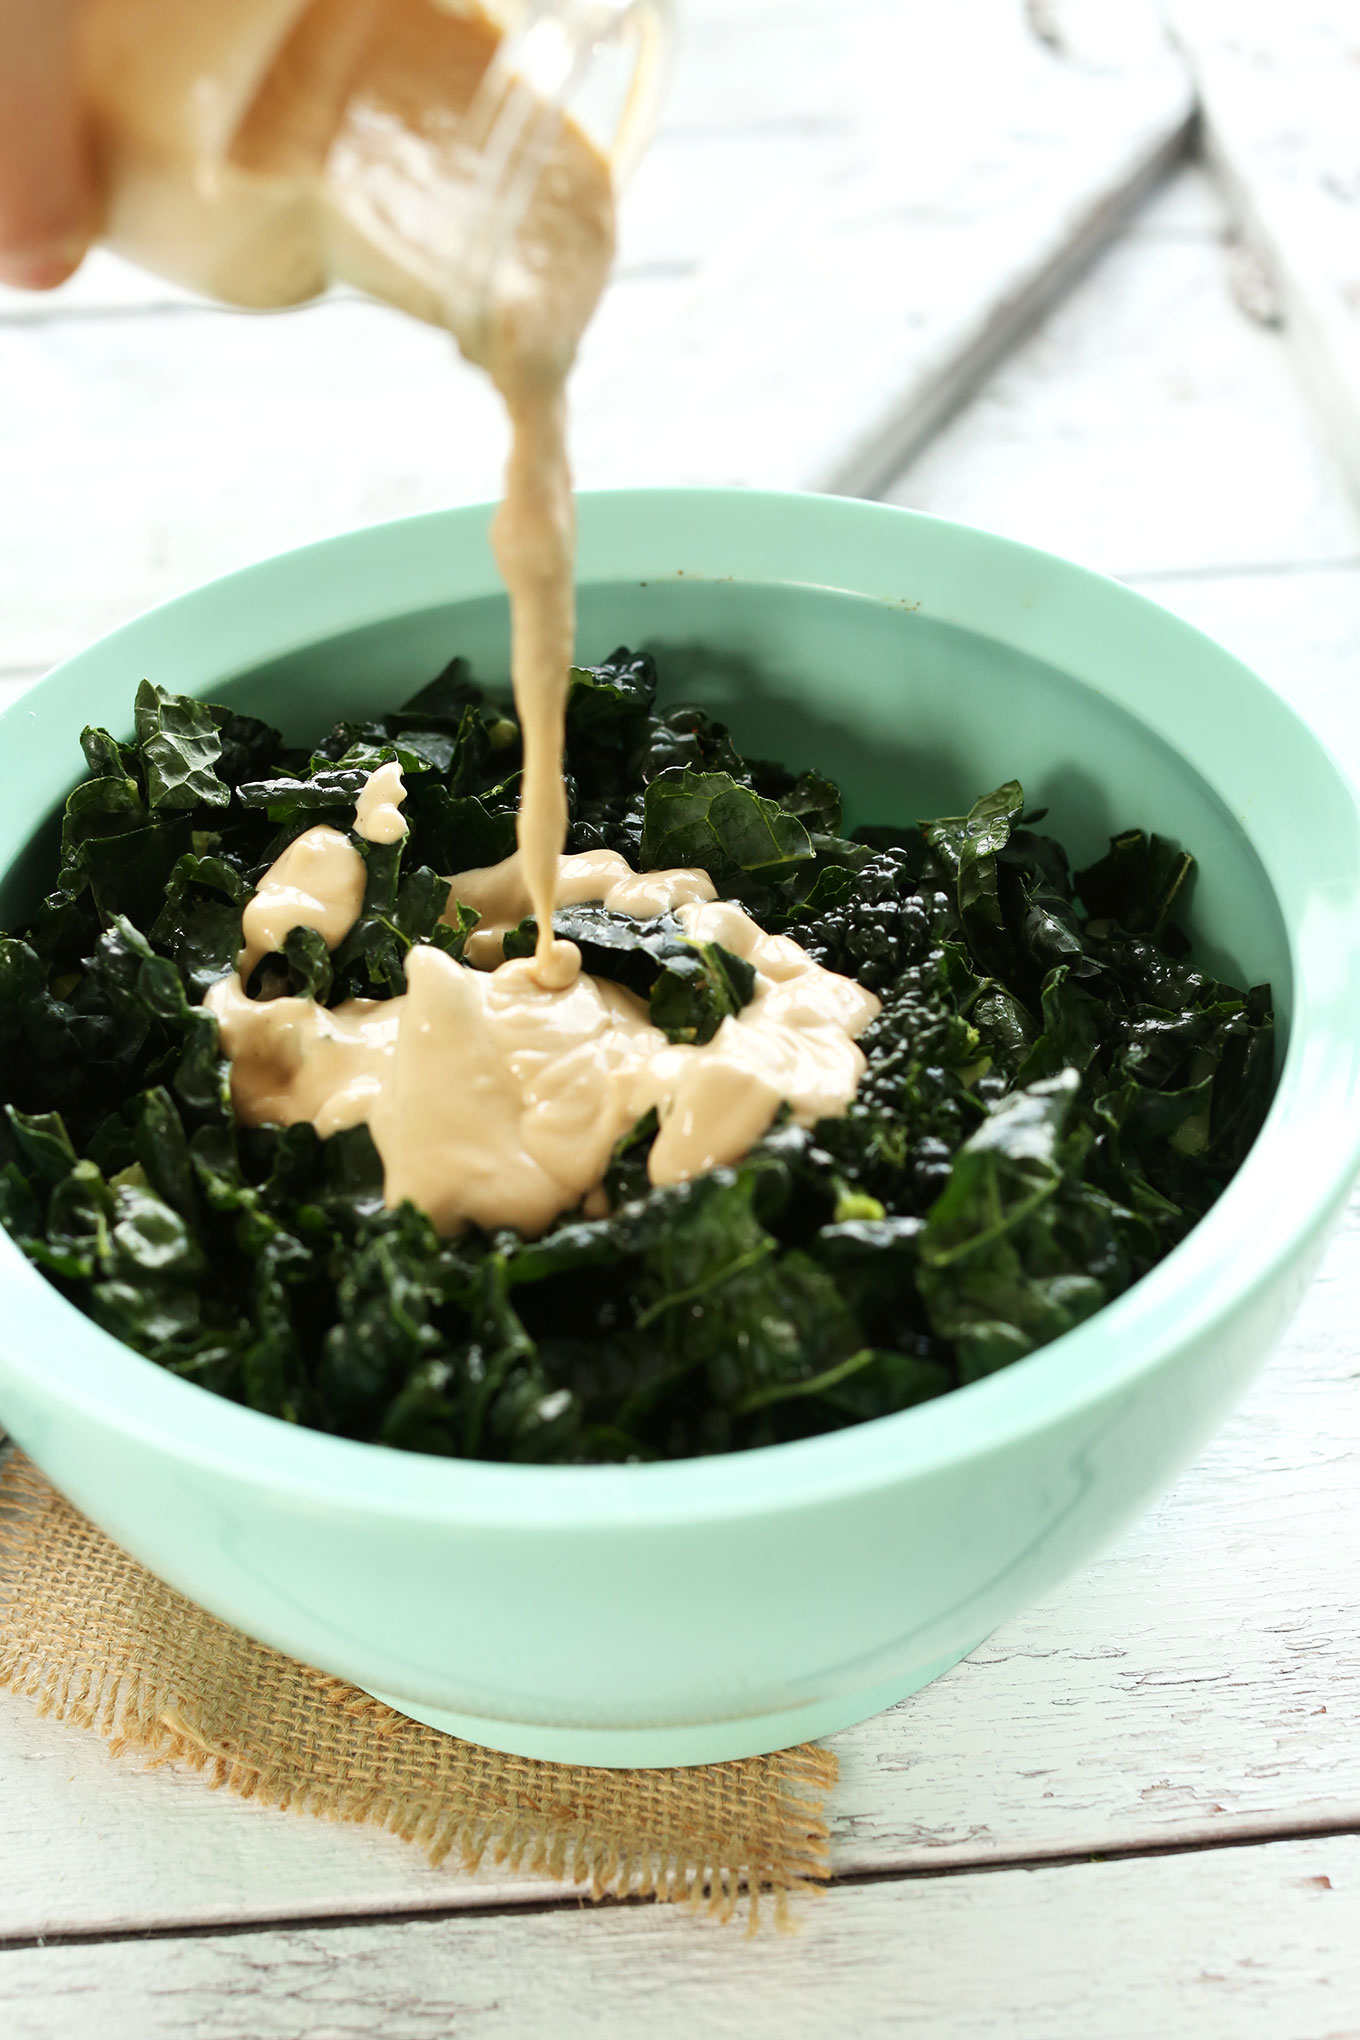 Pouring dressing onto our Garlicky Kale Salad recipe